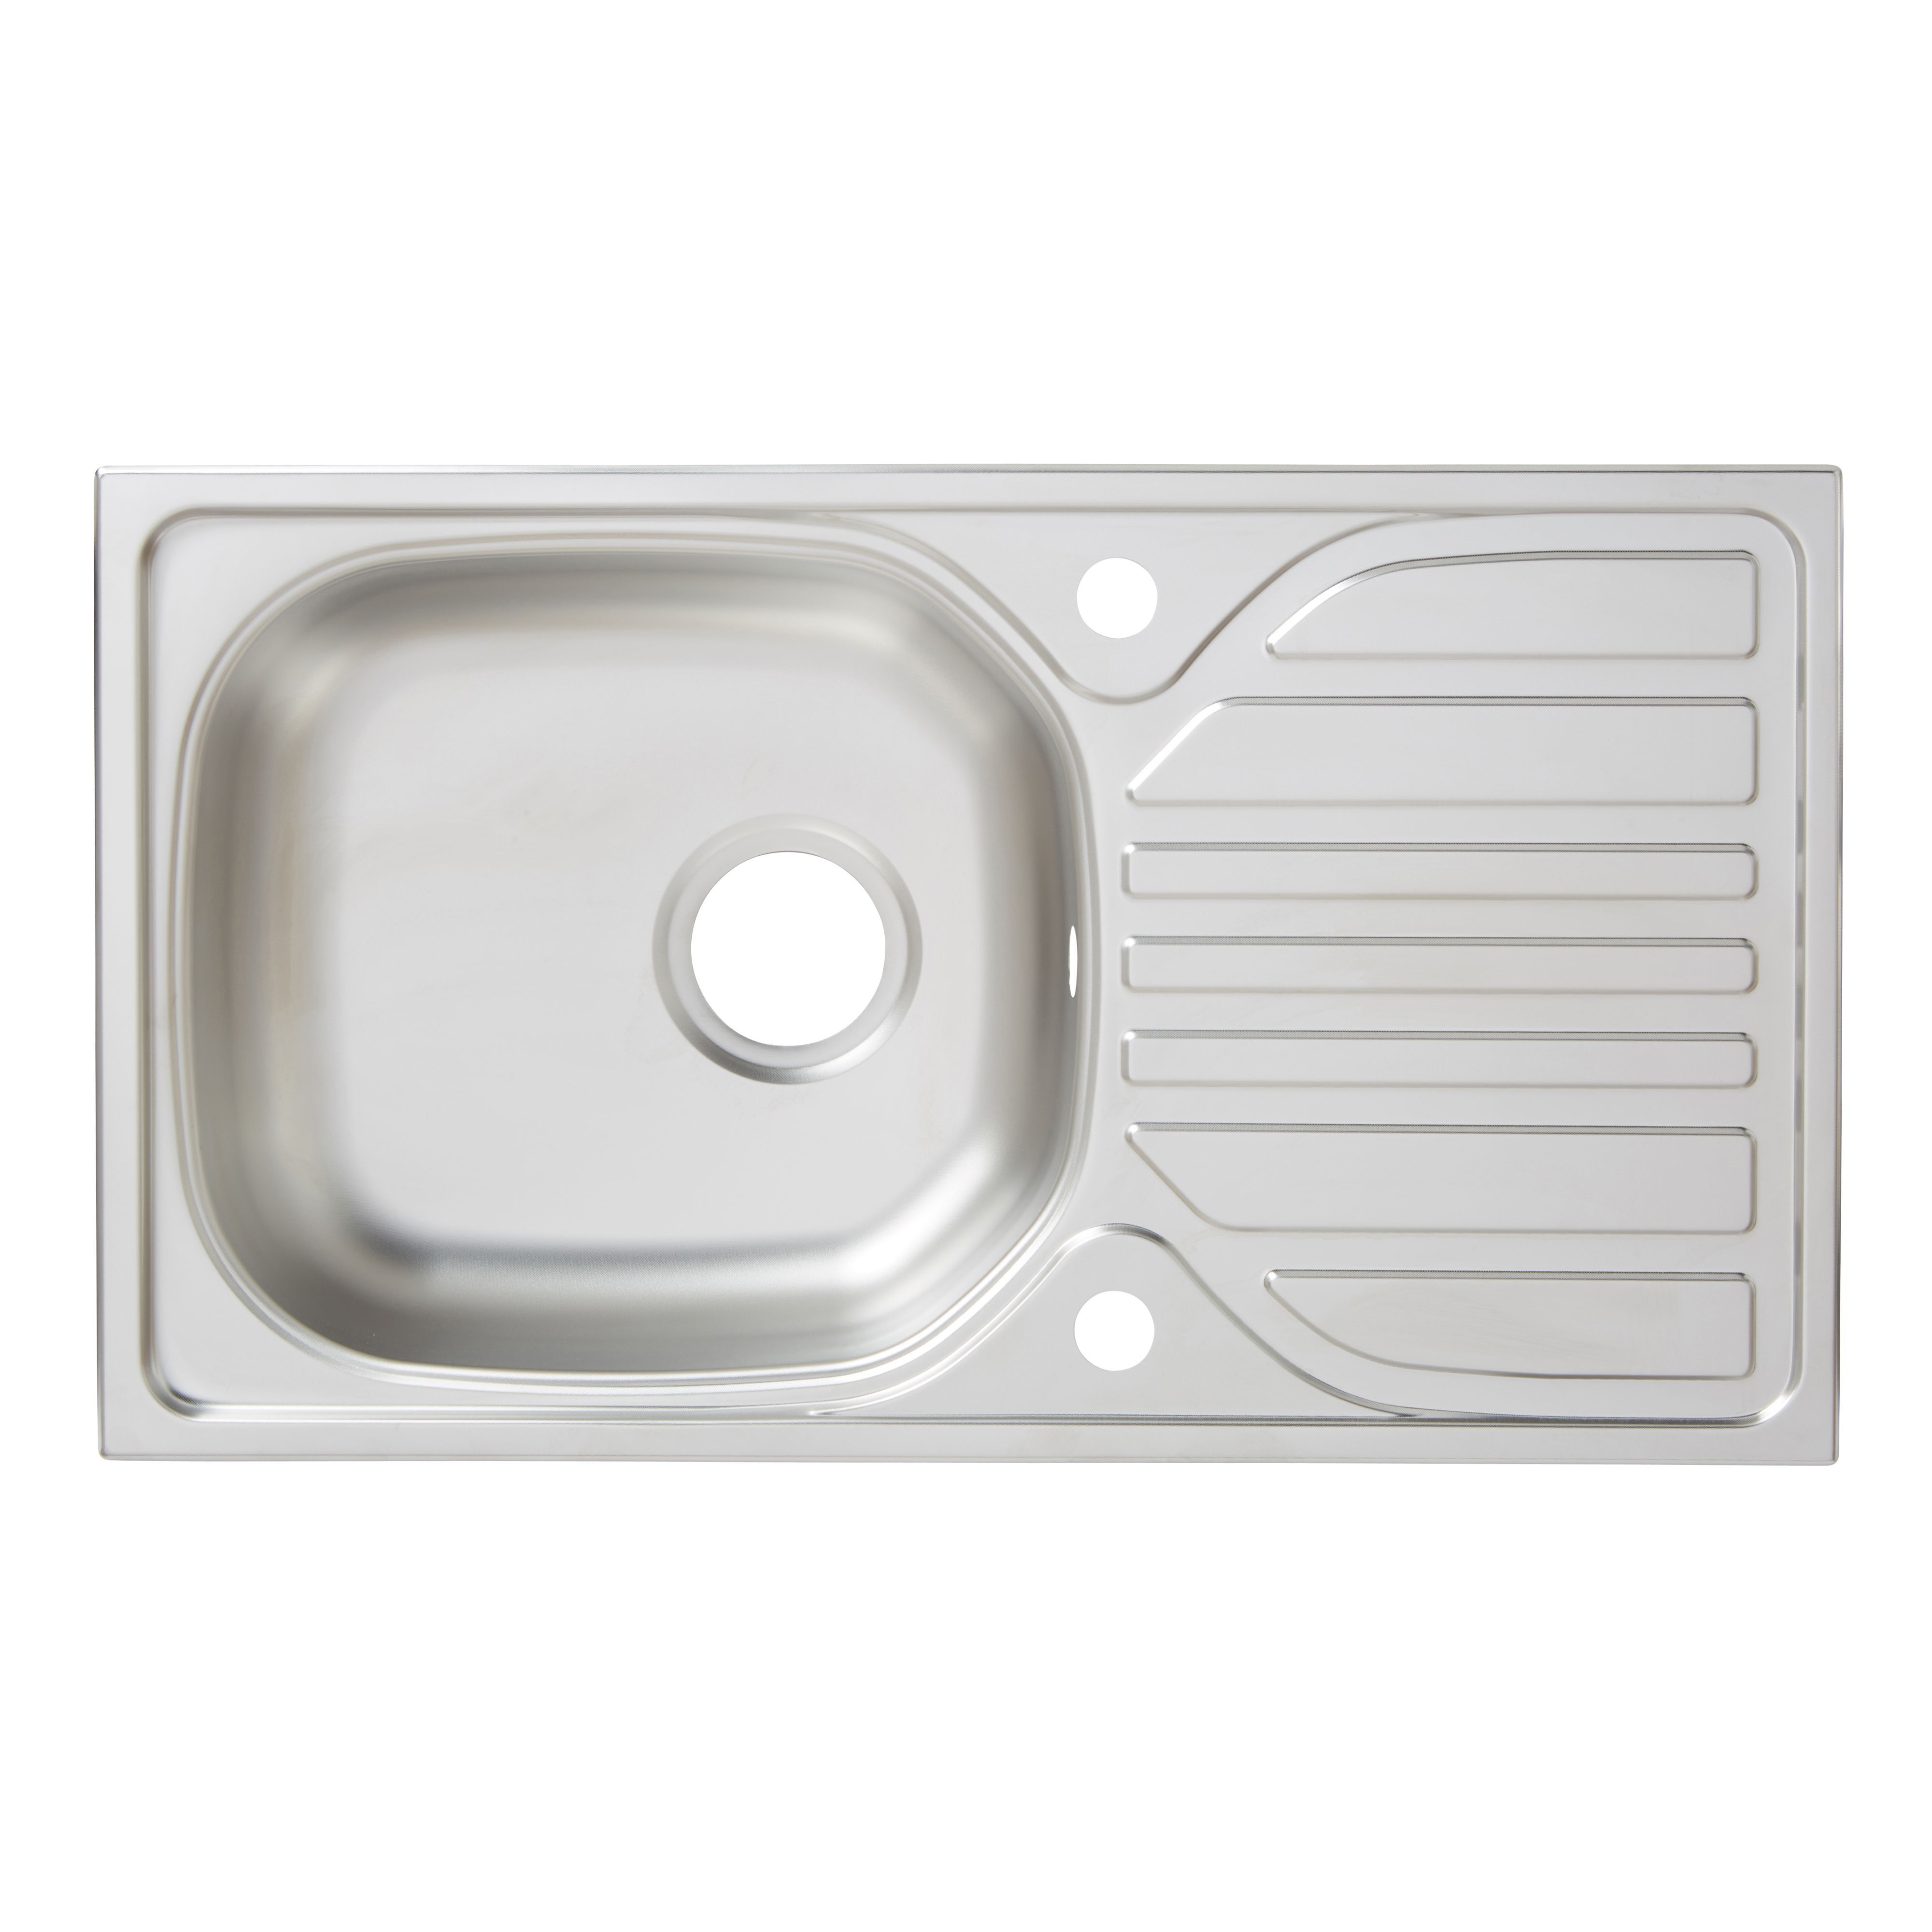 Turing 1 Bowl Linen Finish Stainless Steel Sink & Drainer